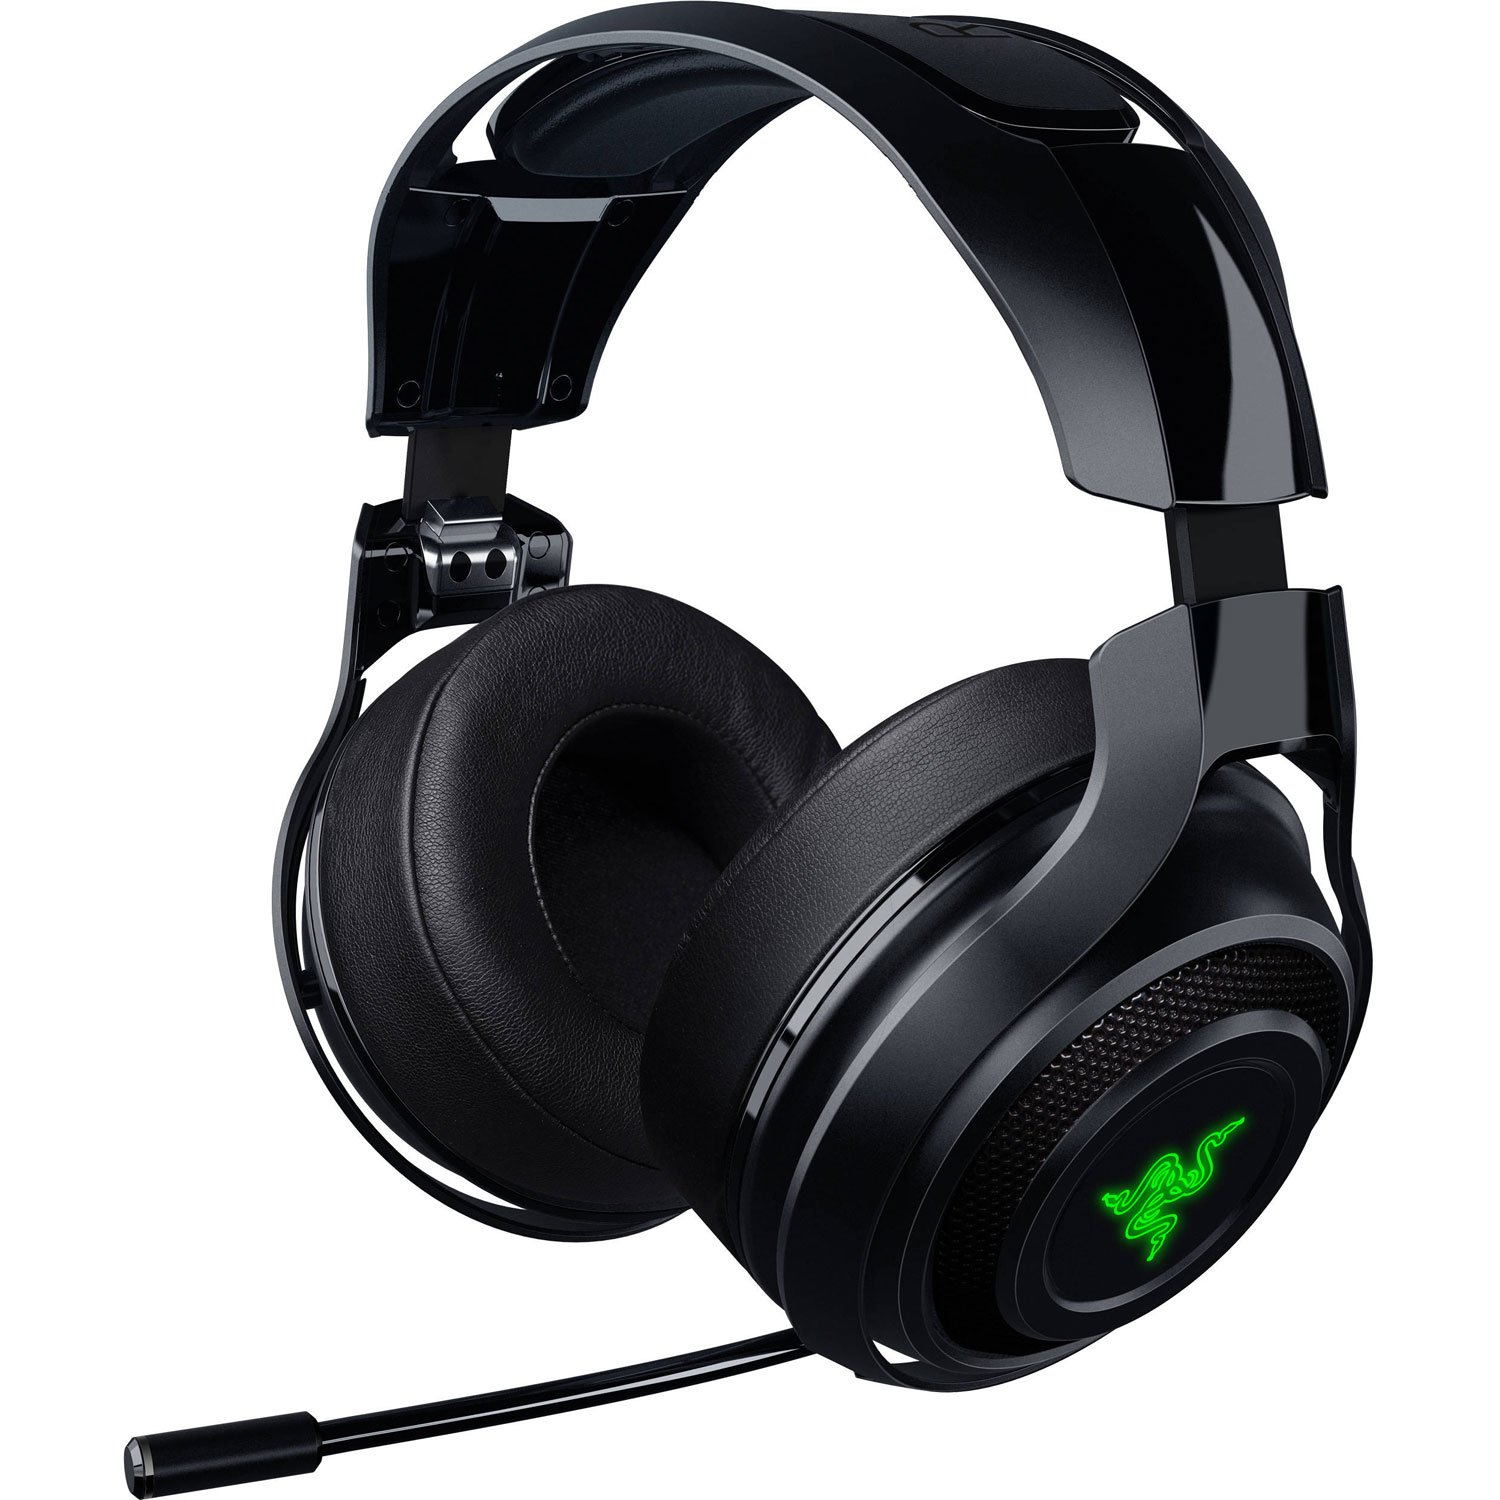 RAZER MAN O'WAR - Gaming Headset